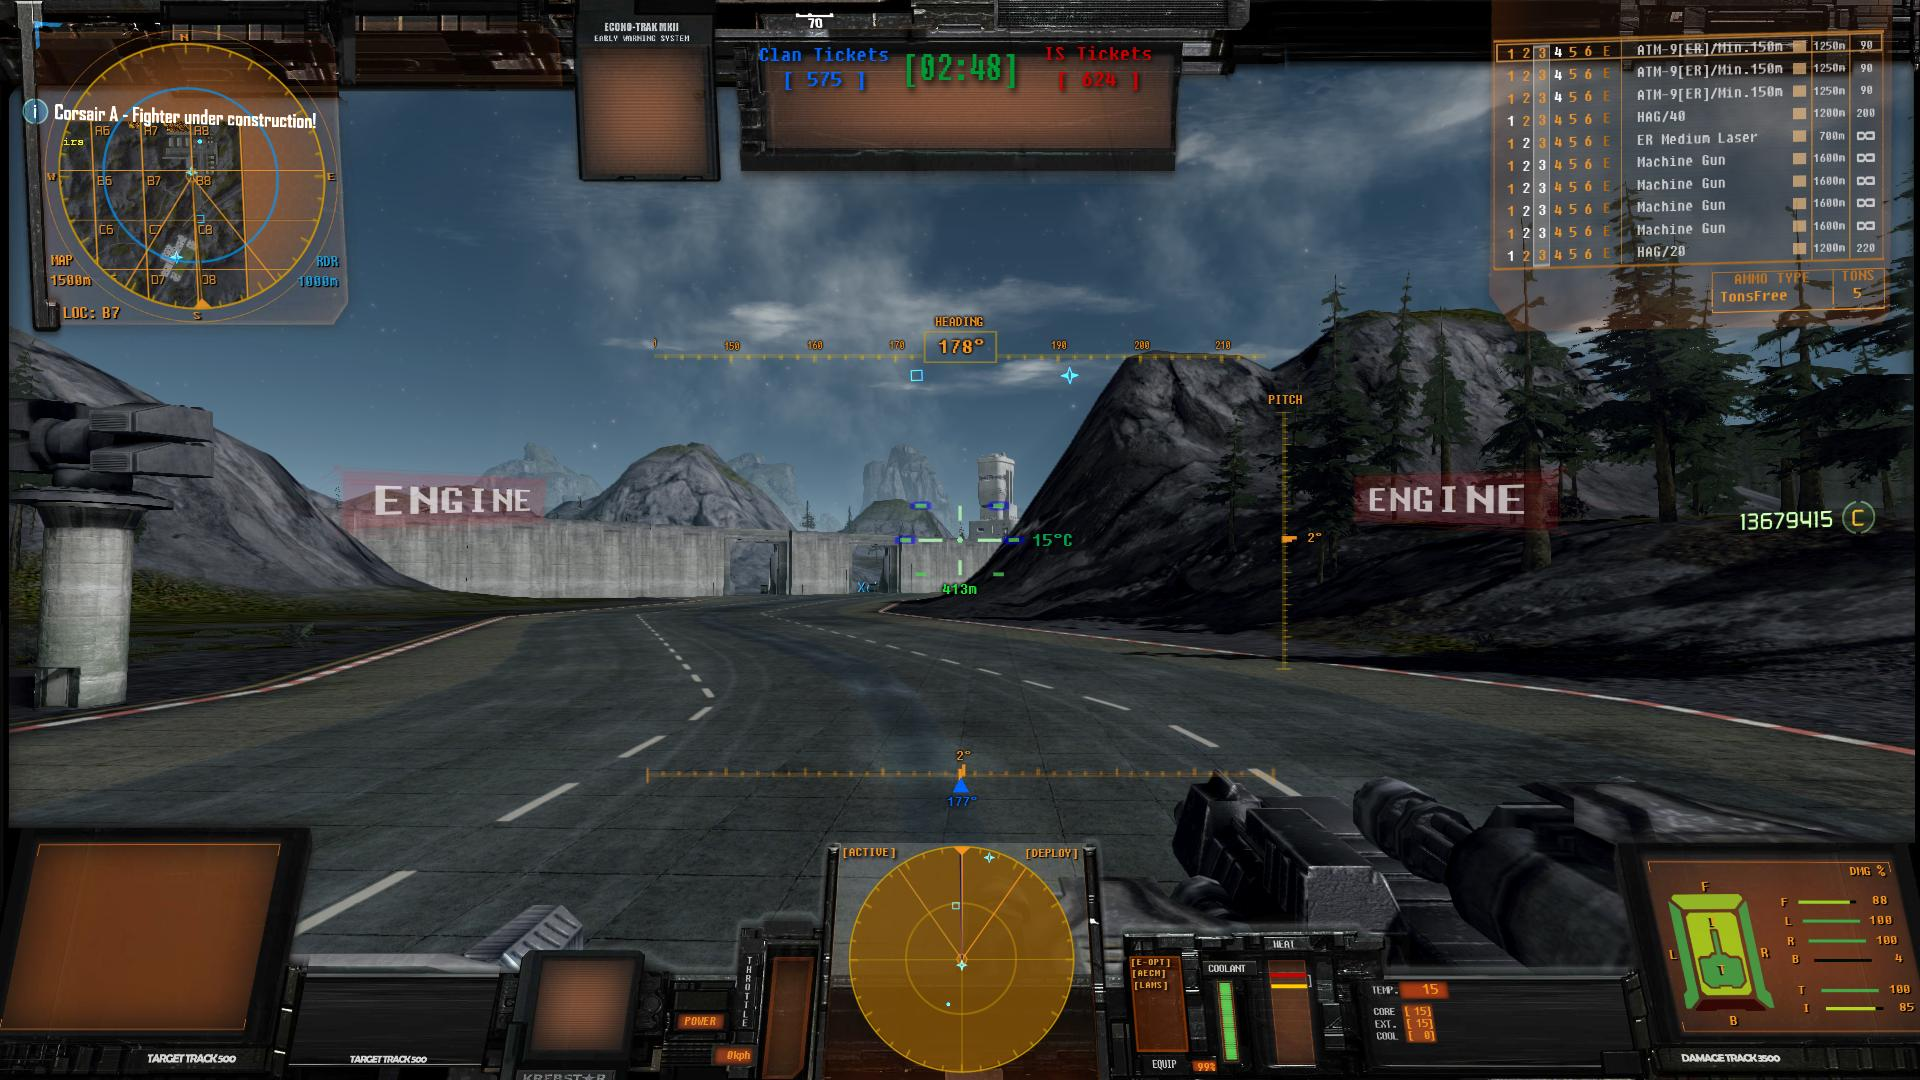 New Tank HUD with Engine Breach Alert